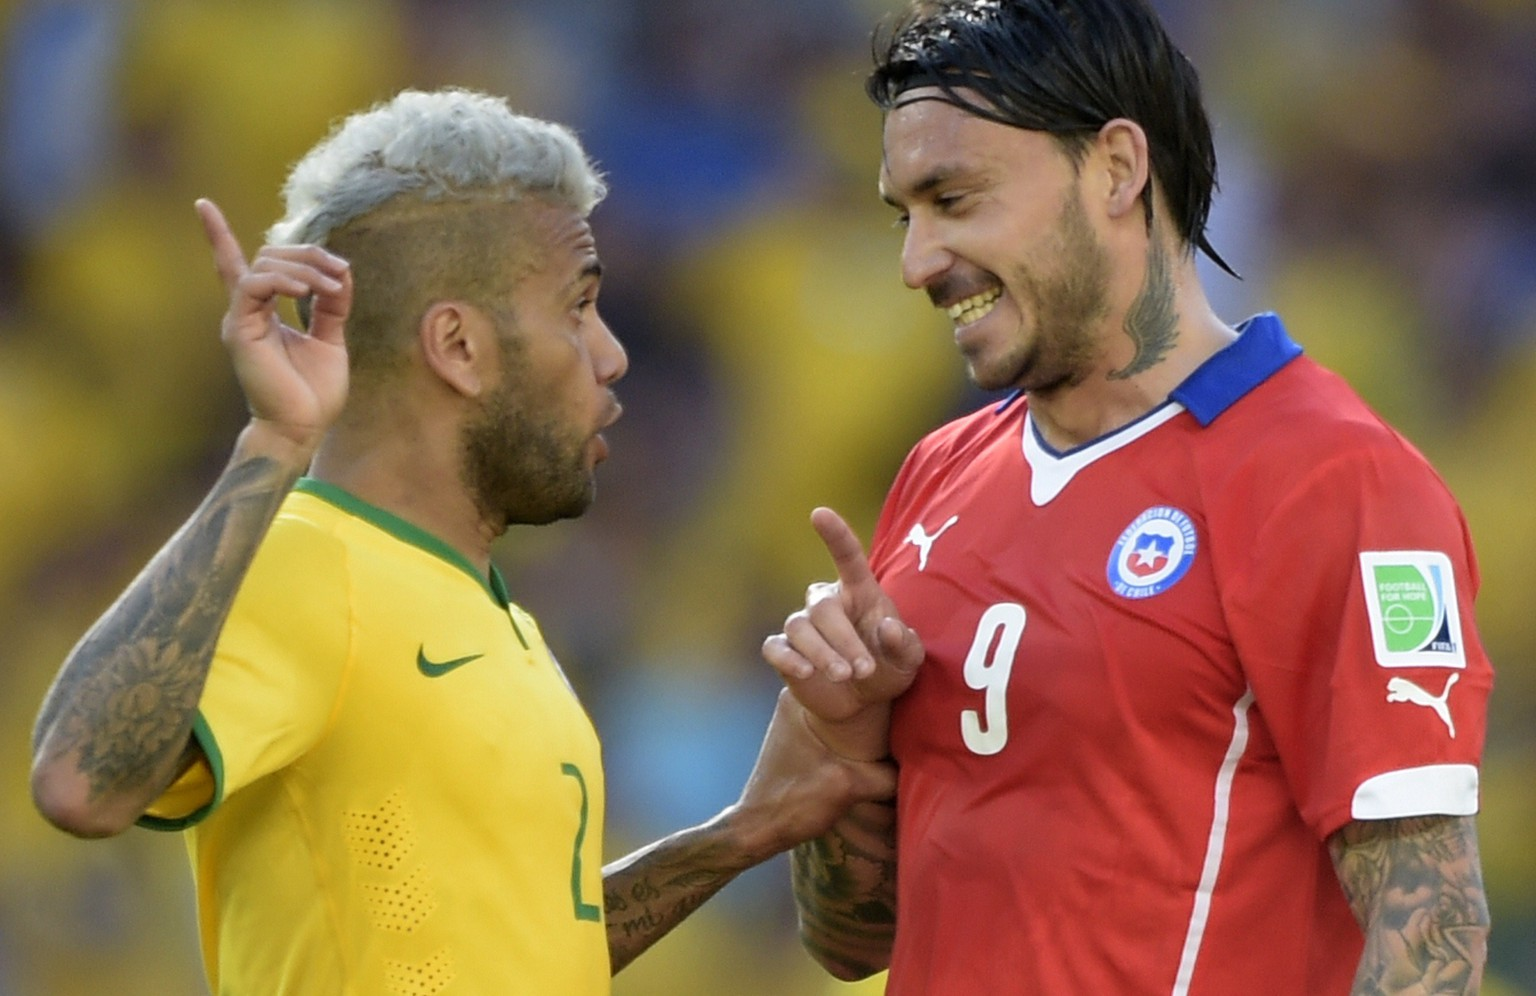 Brazil's defender Dani Alves (L) gestures towards Chile's forward Mauricio Pinilla during the Round of 16 football match between Brazil and Chile at The Mineirao Stadium in Belo Horizonte on June 28, 2014, during the 2014 FIFA World Cup. AFP PHOTO / JUAN MABROMATA